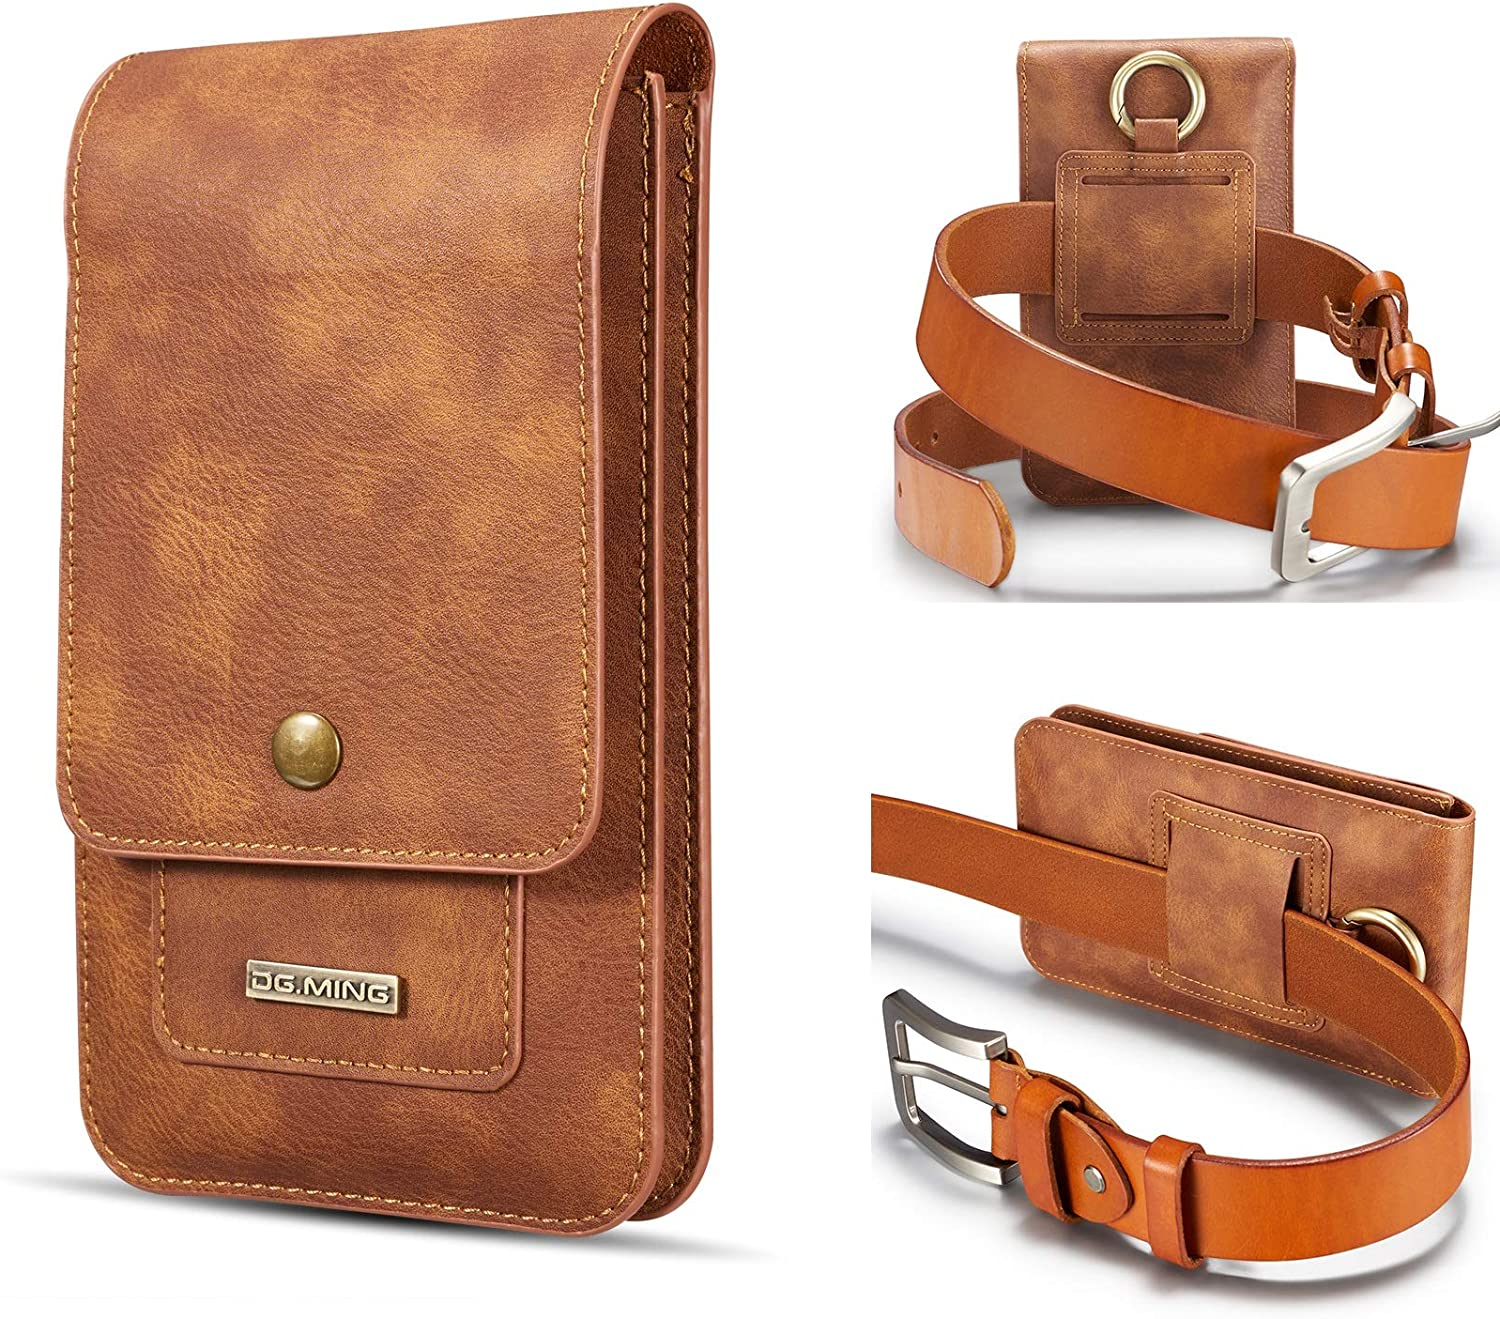 Real Cowhide Leather Cell Phone Holster For Samsung Galaxy S20 FE 5G,S20+ 5G,Note10 Lite,Note20,Note20 Ultra 5G,S21 Ultra 5G,S21+ 5G, Mens Waist Pack Belt Pouch Case, 2 Phone Pocktes ( Color : Brown )